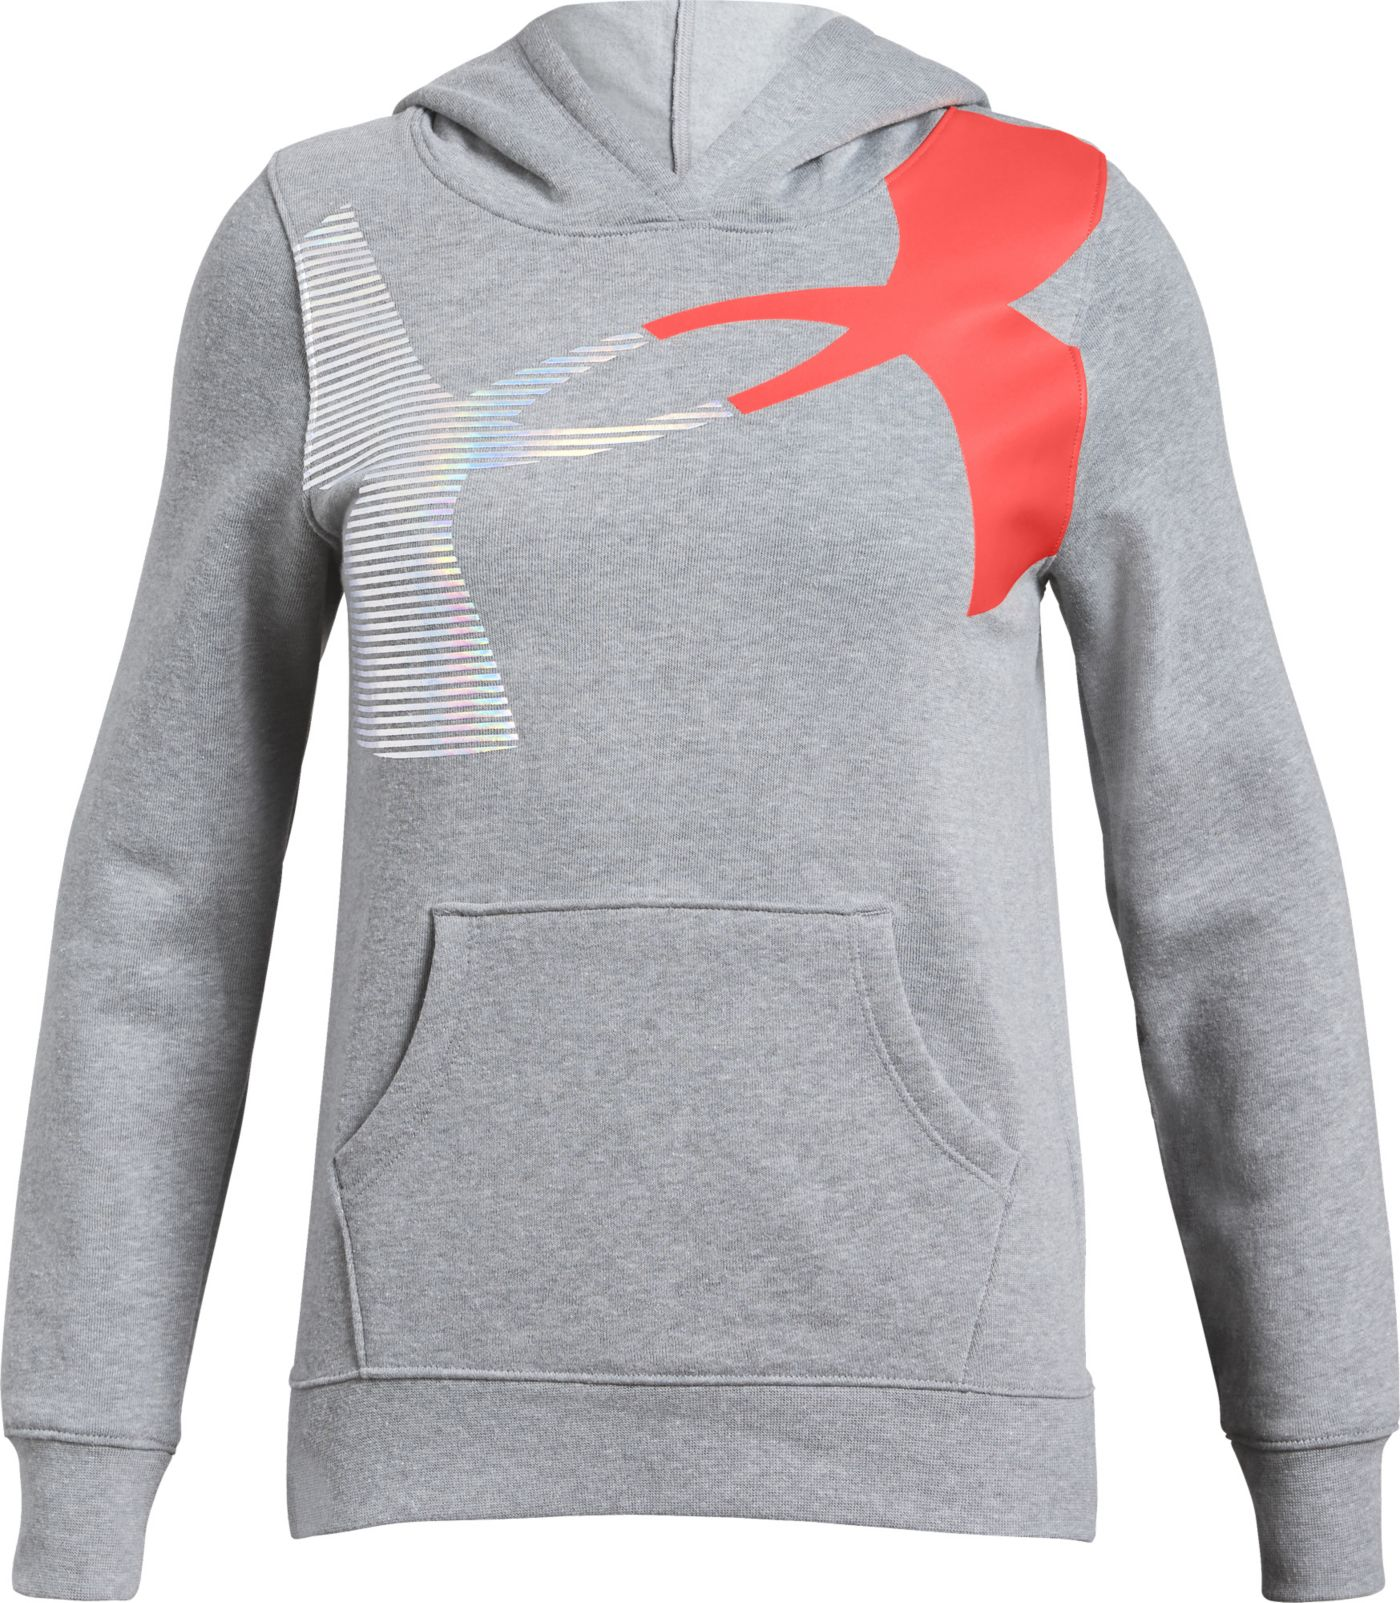 Under Armour Girls' Rival Fleece Hoodie